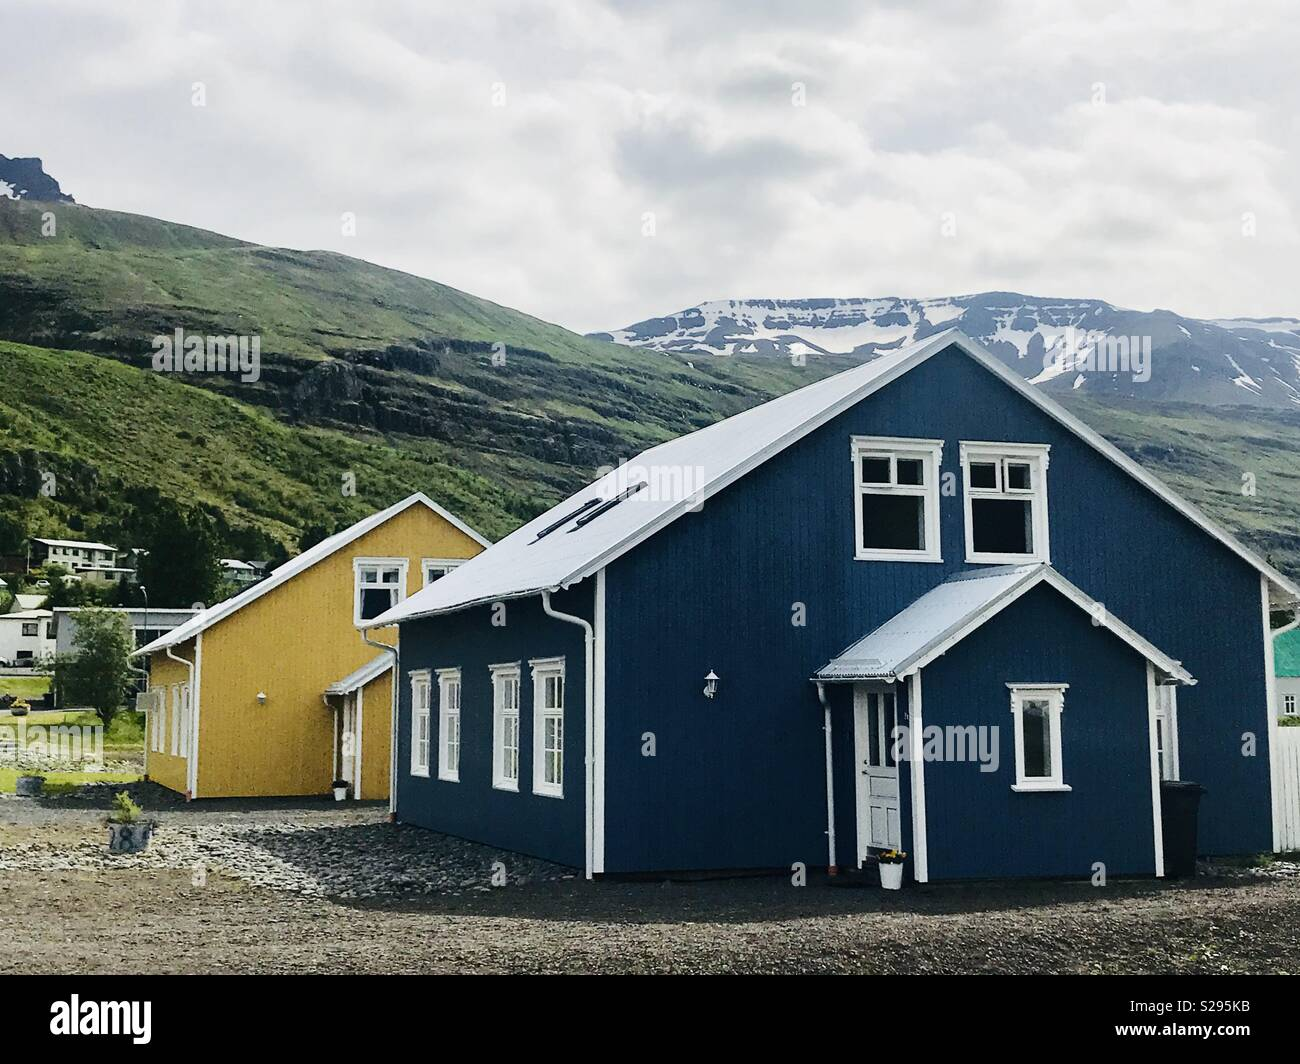 Houses in the town of Seydisfjordur, Iceland - Stock Image